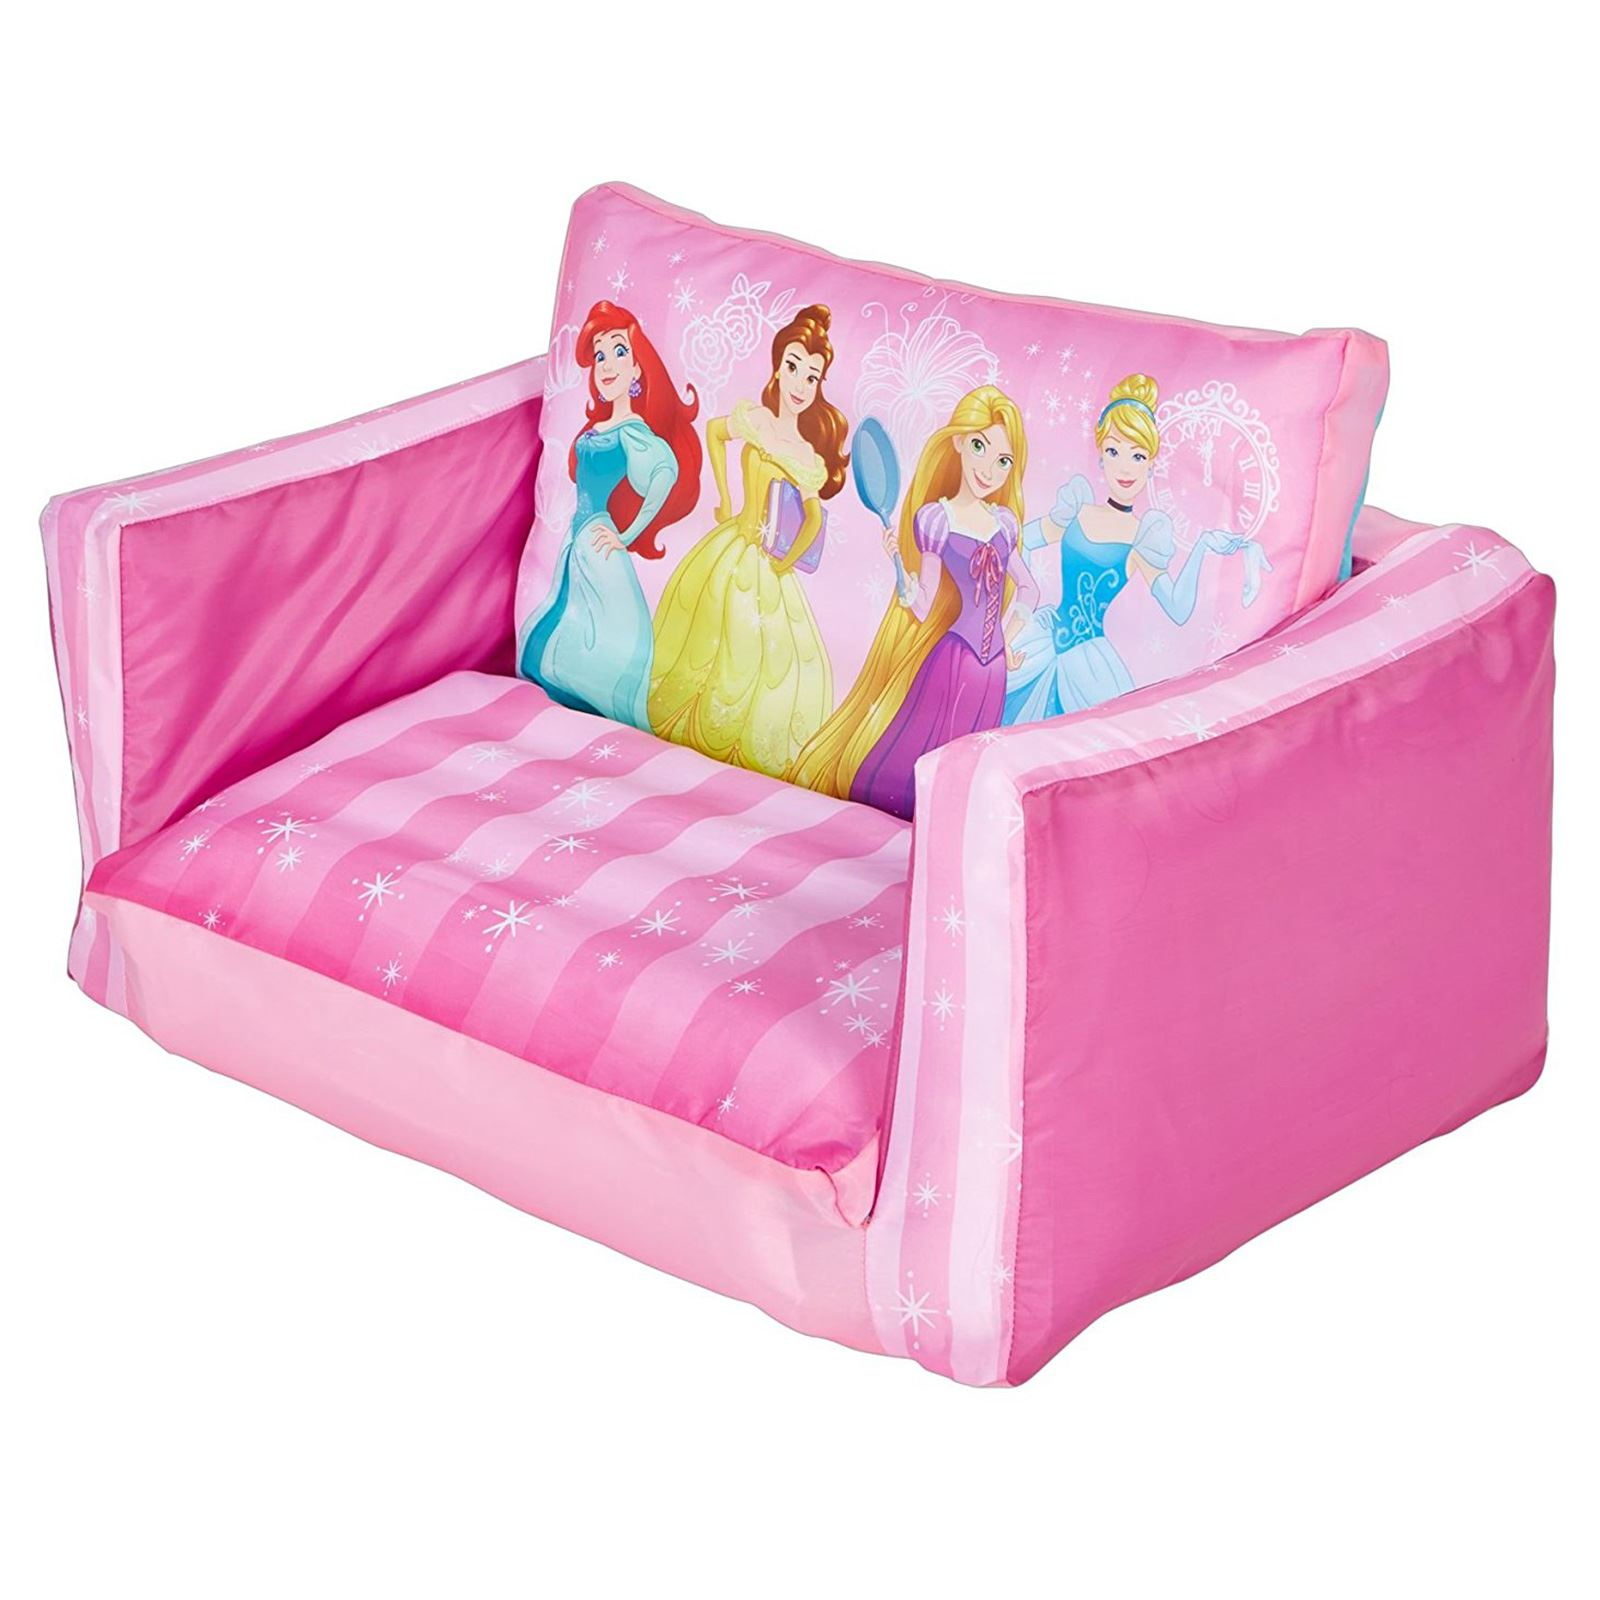 Swell Details About Disney Princess Flip Out Sofa Kids Inflatable Belle Cinderella Rapunzel Pink New Onthecornerstone Fun Painted Chair Ideas Images Onthecornerstoneorg